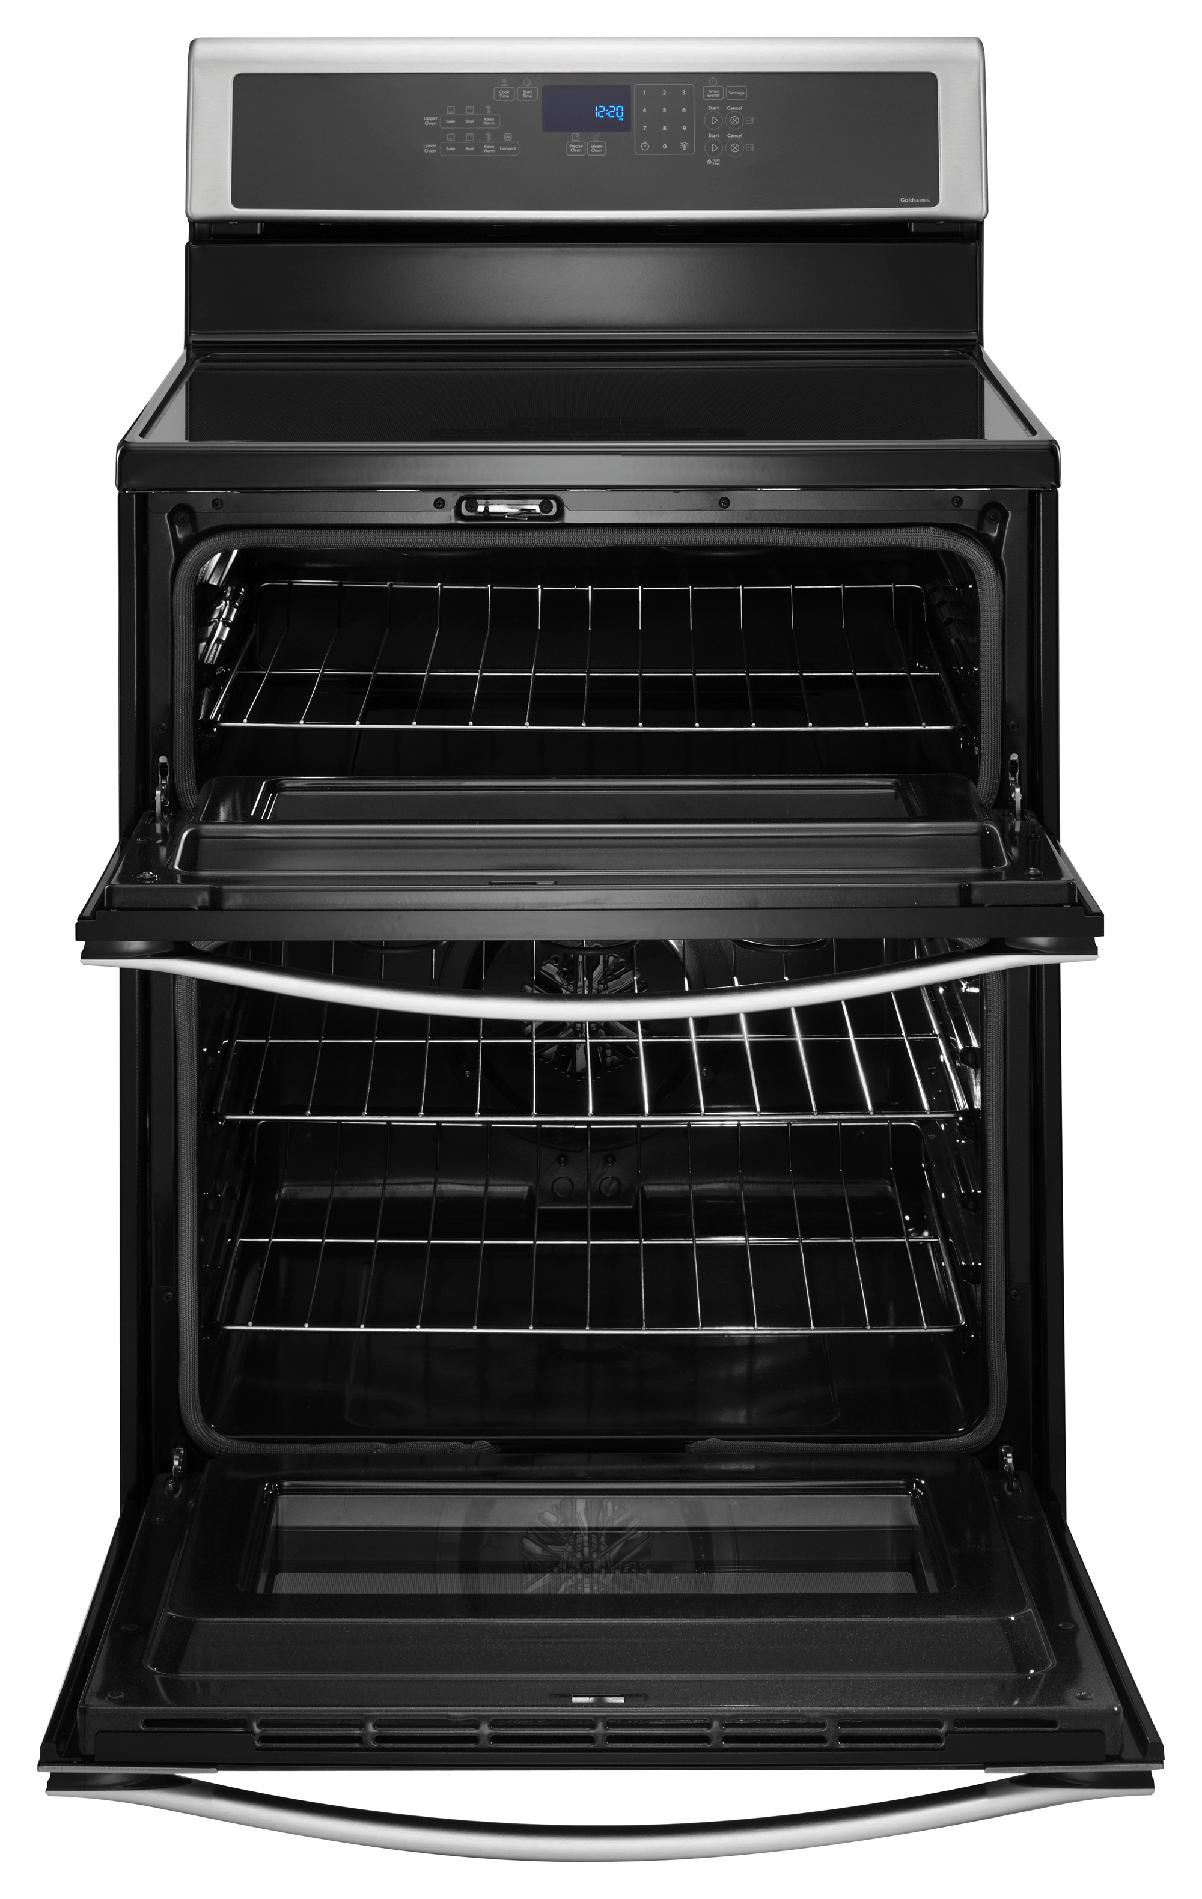 "Whirlpool 30"" Electric Range w/ Induction Cooktop, Double Oven - Stainless Steel"